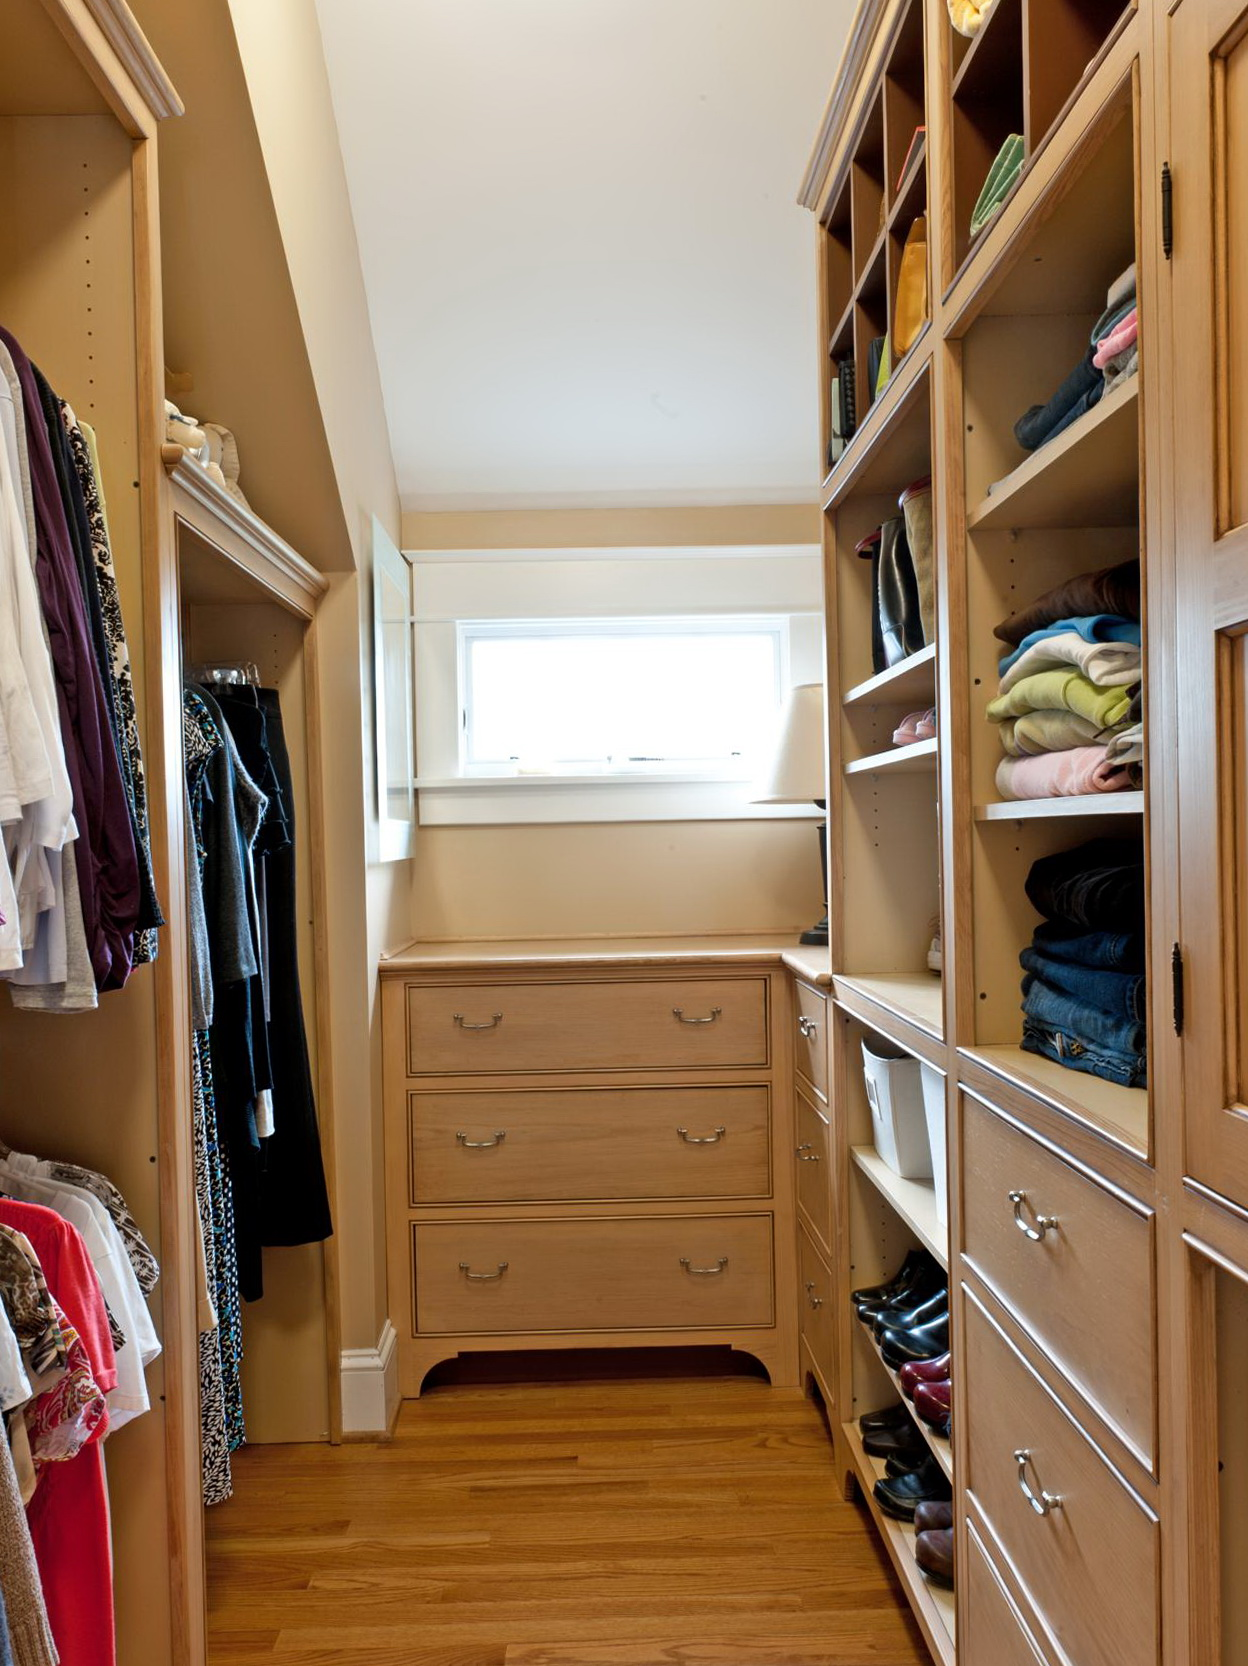 Design Your Own Closet Space Home Design Ideas